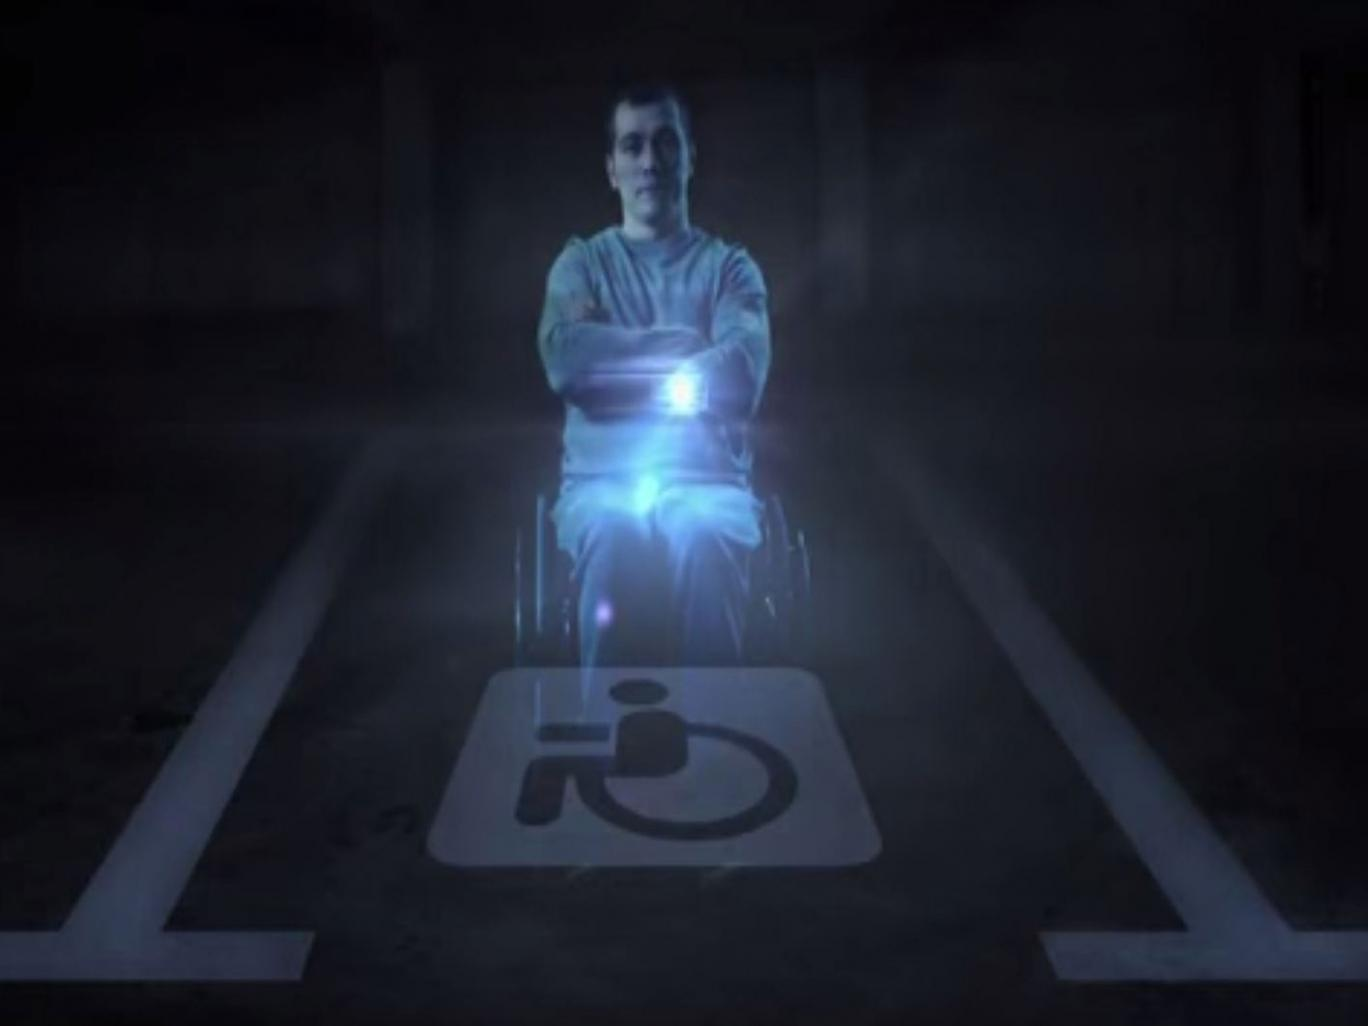 Russian disabled parking campaign uses 3 components of great storytelling